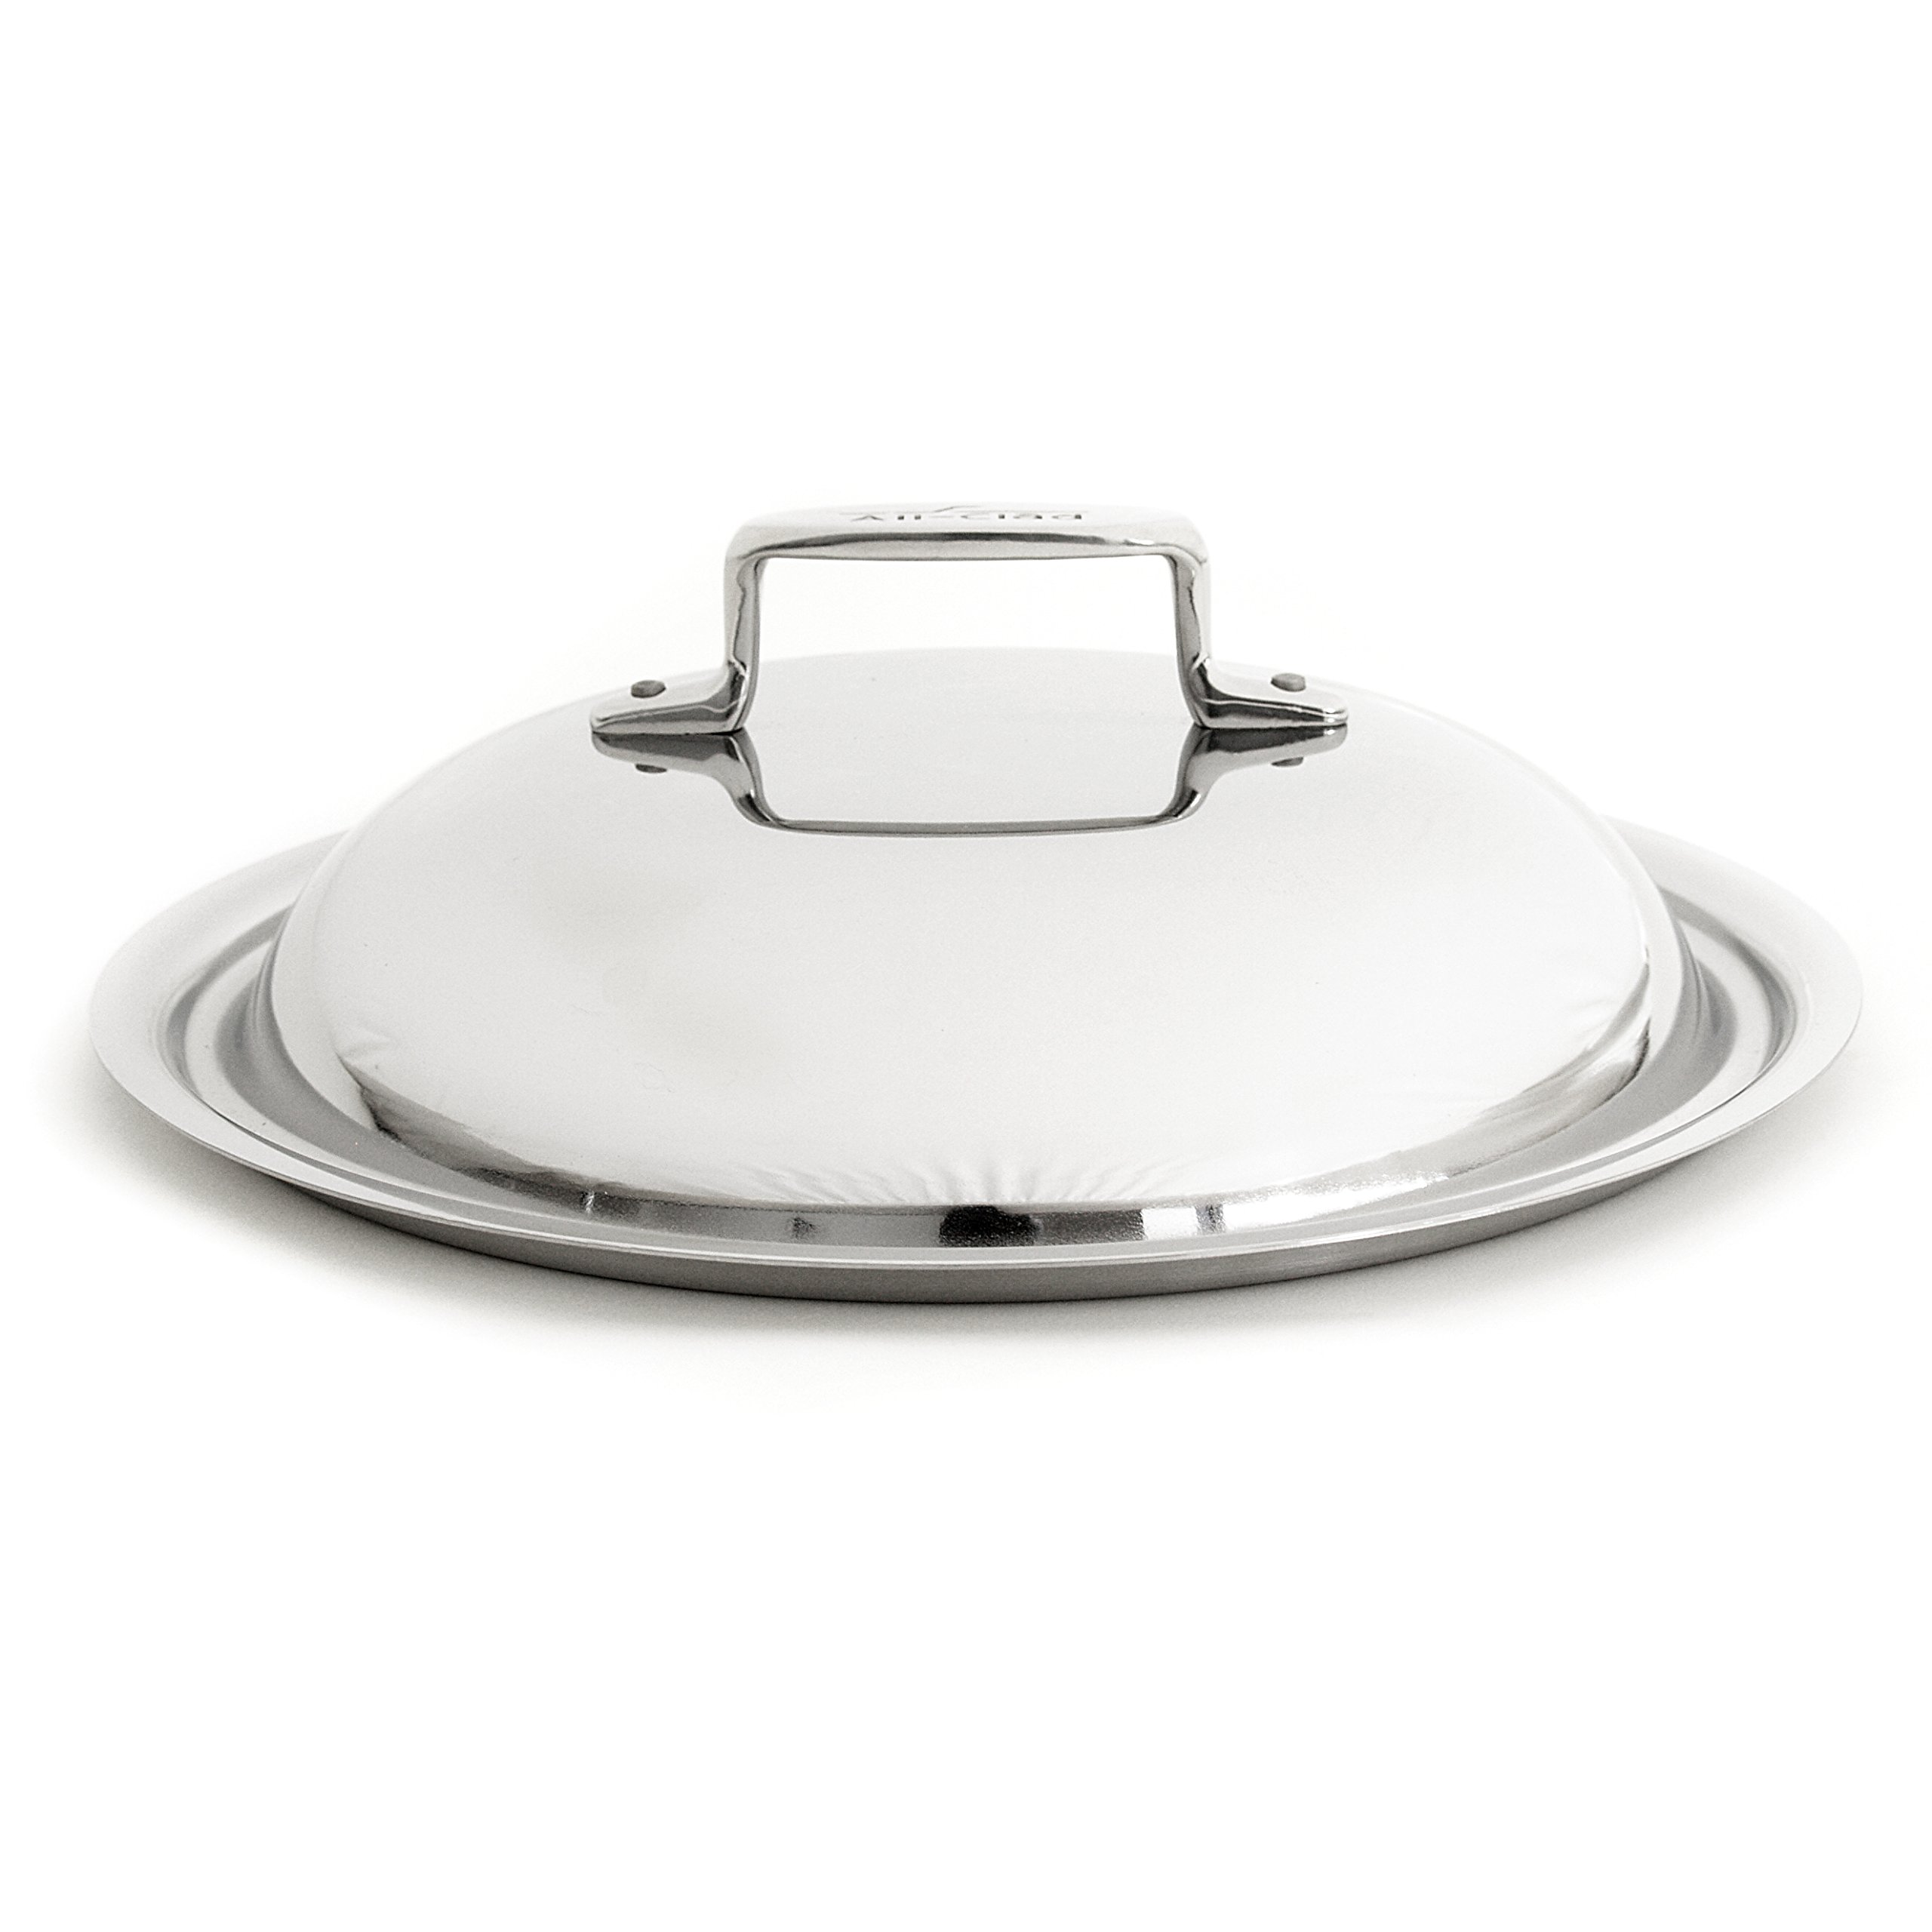 All-Clad D5 Brushed Stainless Steel Domed Lid for 11 Inch French Skillet or 5.5 Quart Dutch Oven